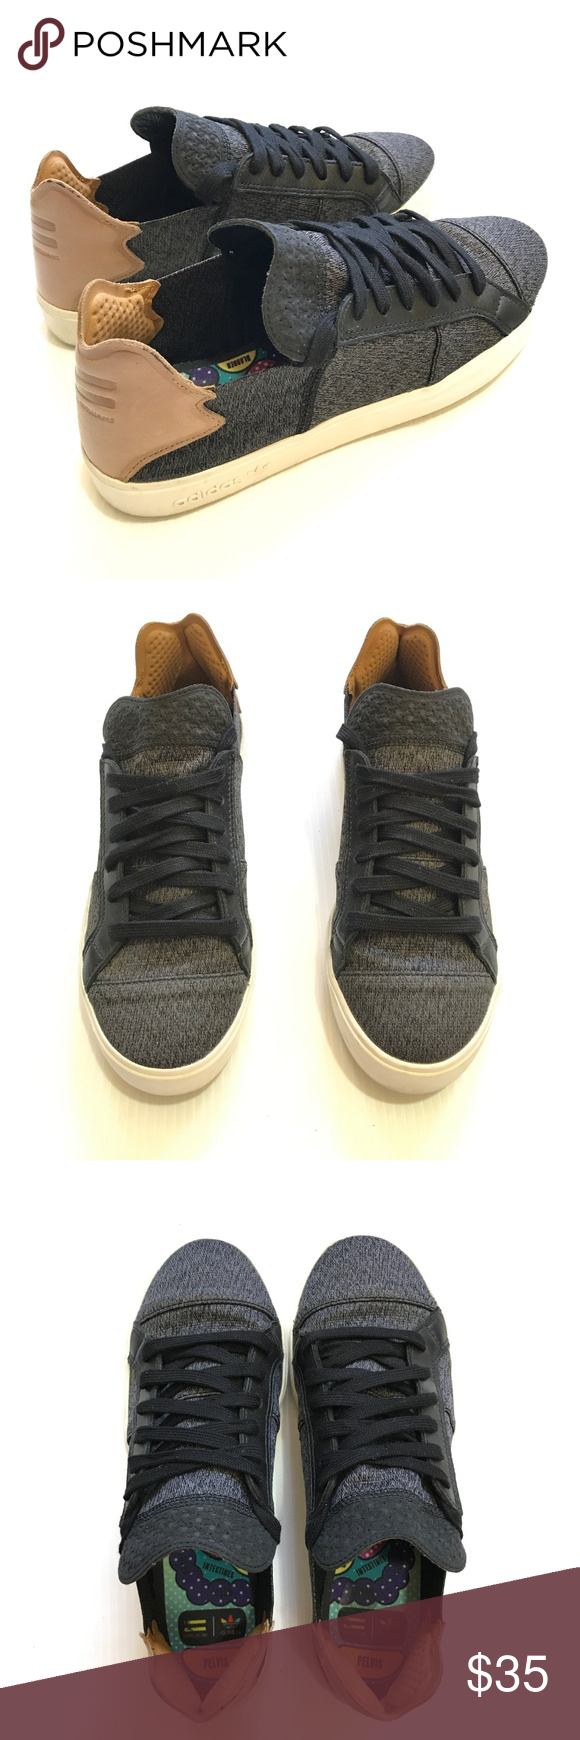 buy popular 324bf e406d Pharrell Williams x Adidas Elastic Lace Up 2024 Woven upper. Marled  blackwhite. Looks grey. Black trim surround the laces.